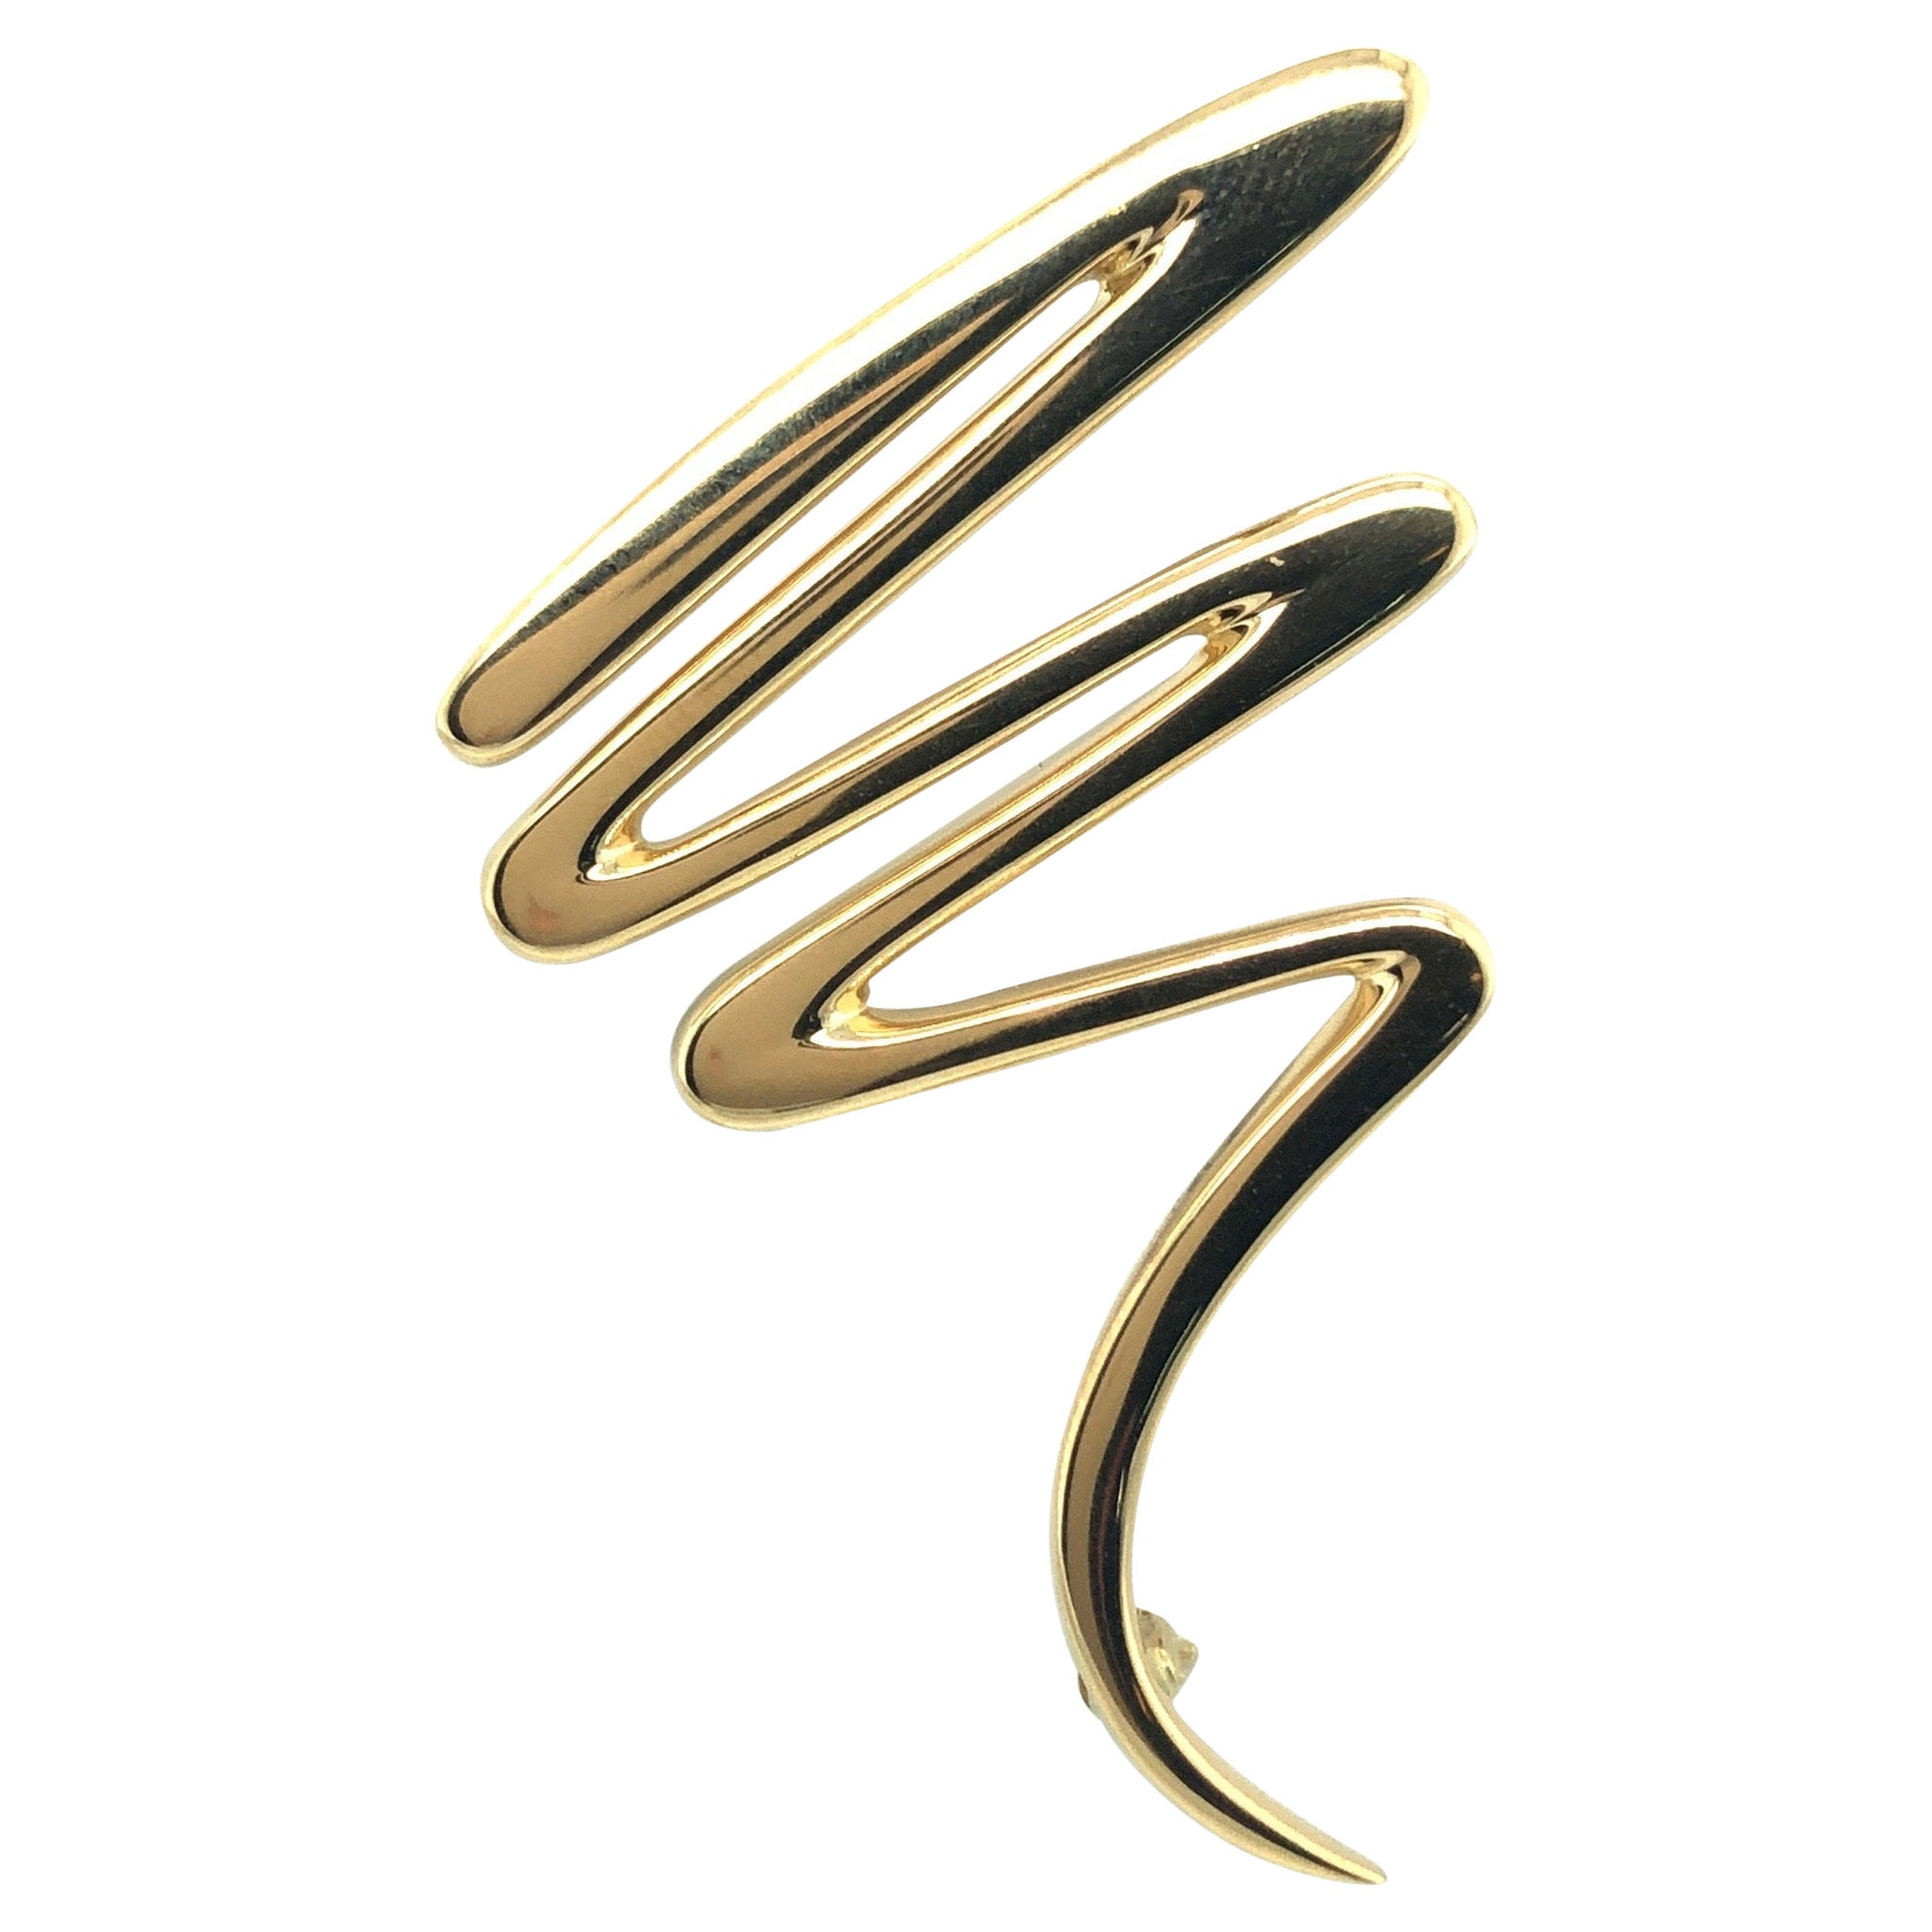 18 Karat Yellow Gold Scribble Brooch by Paloma Picasso for Tiffany & Co., 1983